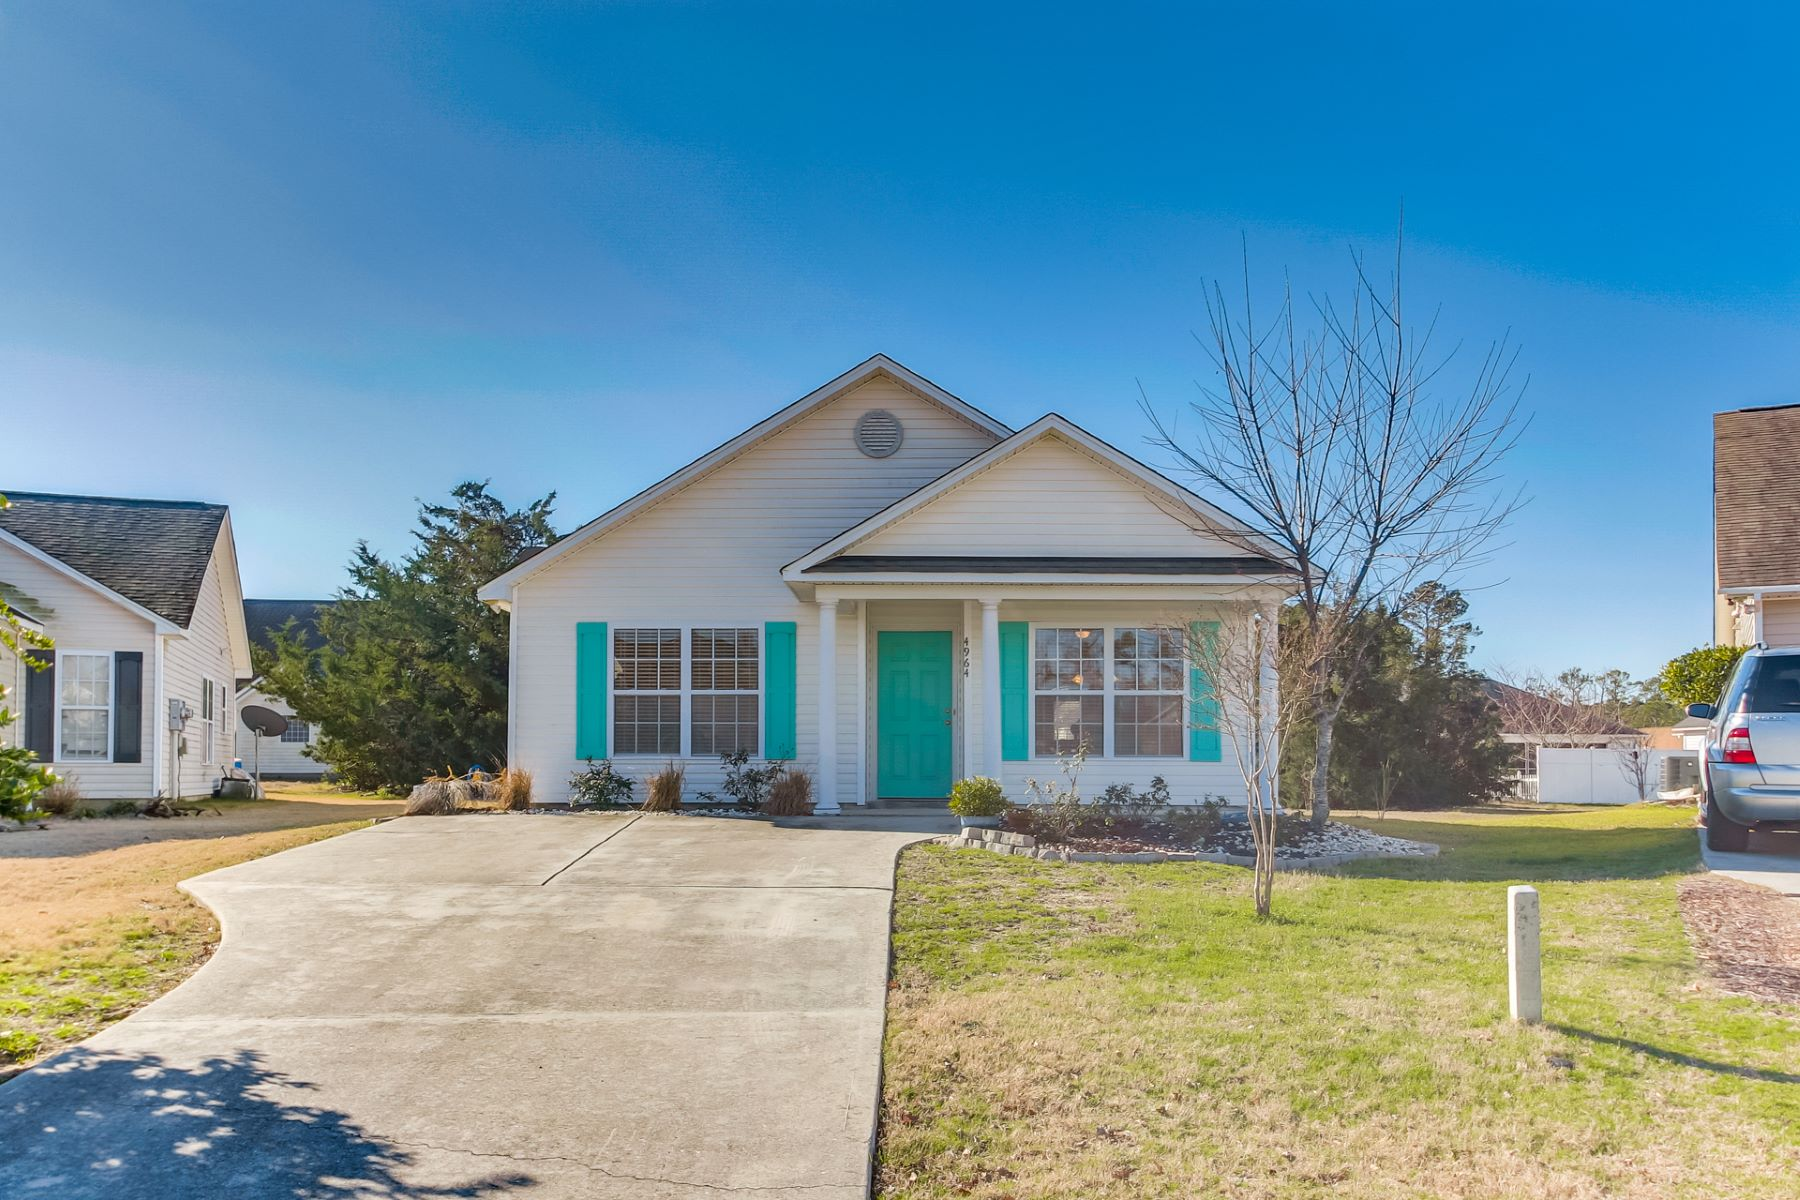 Single Family Home for Active at Cottage Home on Quiet Cul-De-Sac 4964 Montserrat Drive Southport, North Carolina 28461 United States